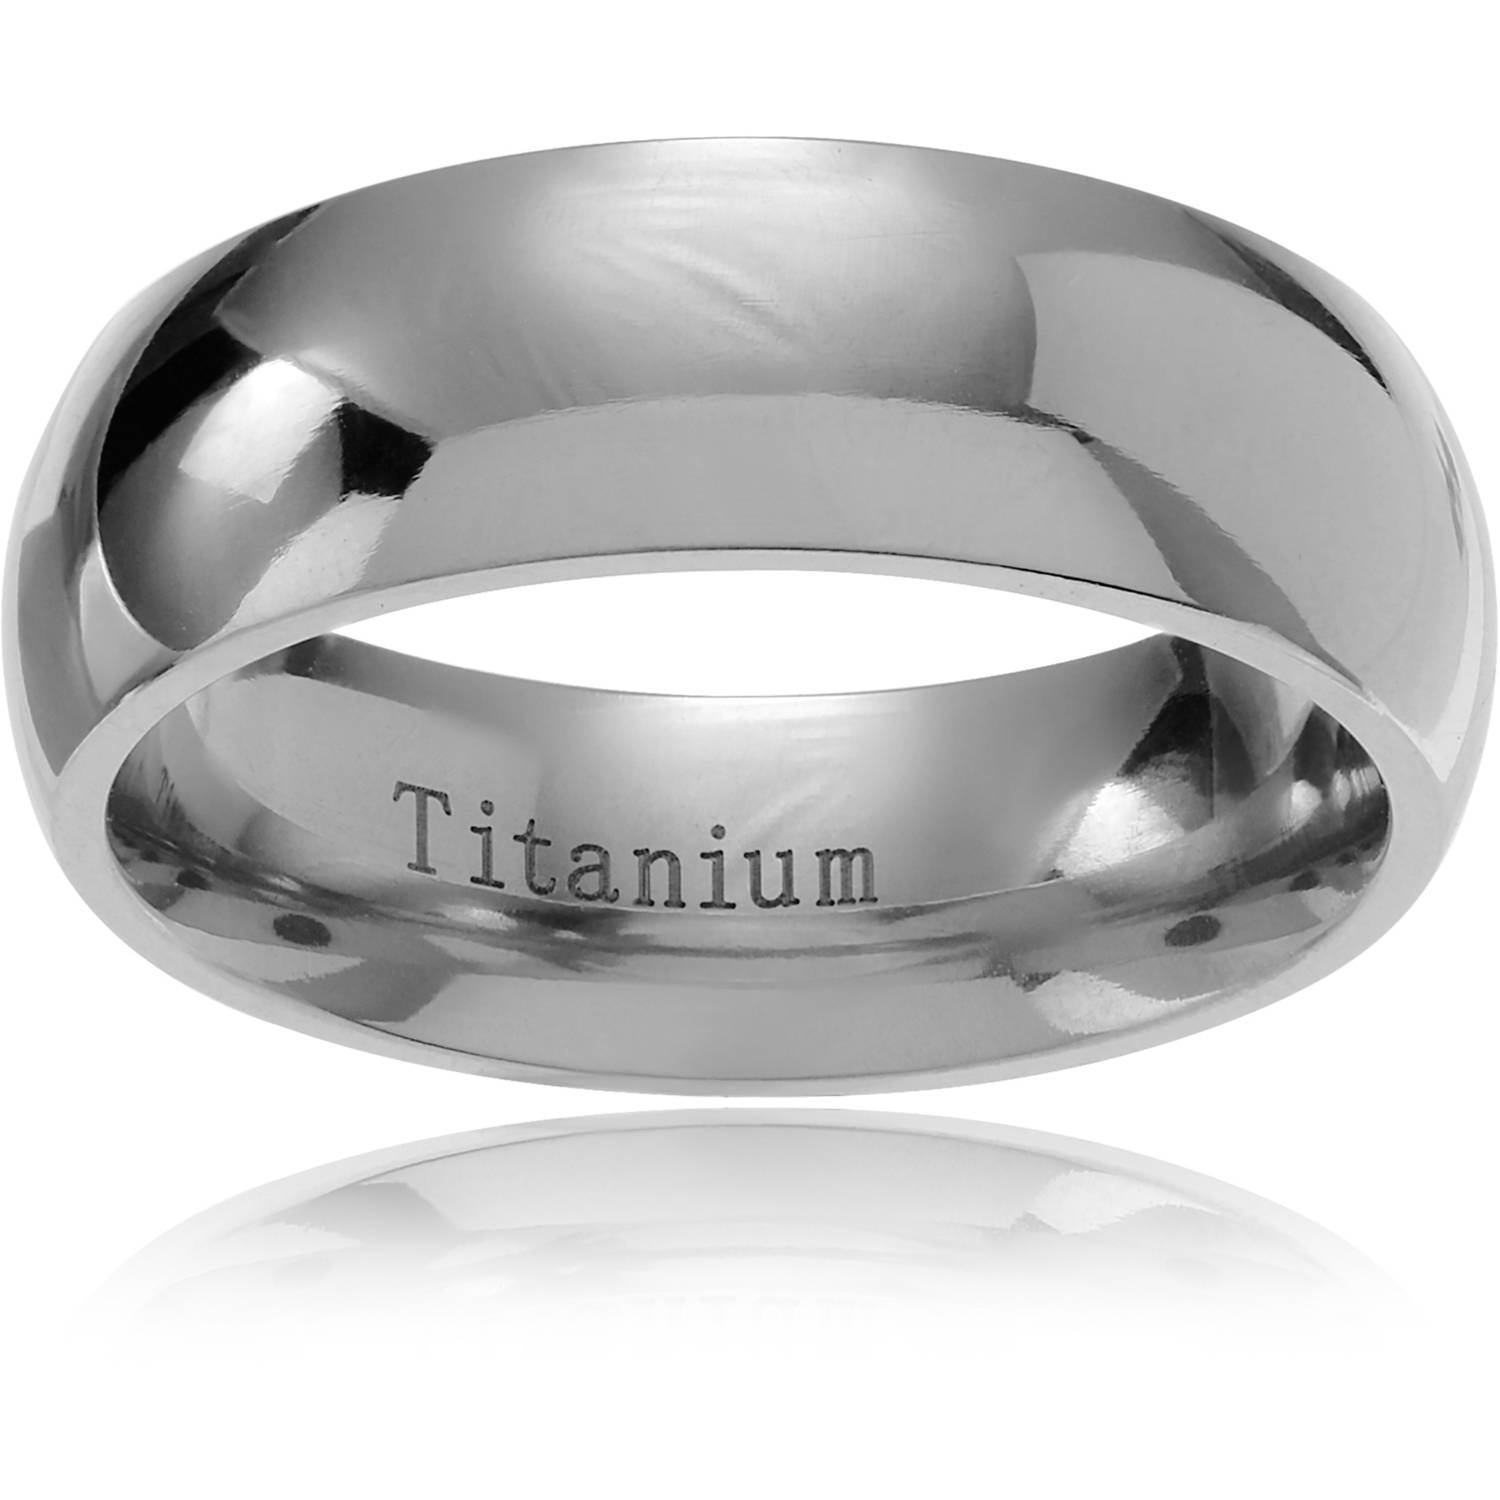 Daxx Men's Titanium Classic Domed Wedding Ring, 7mm